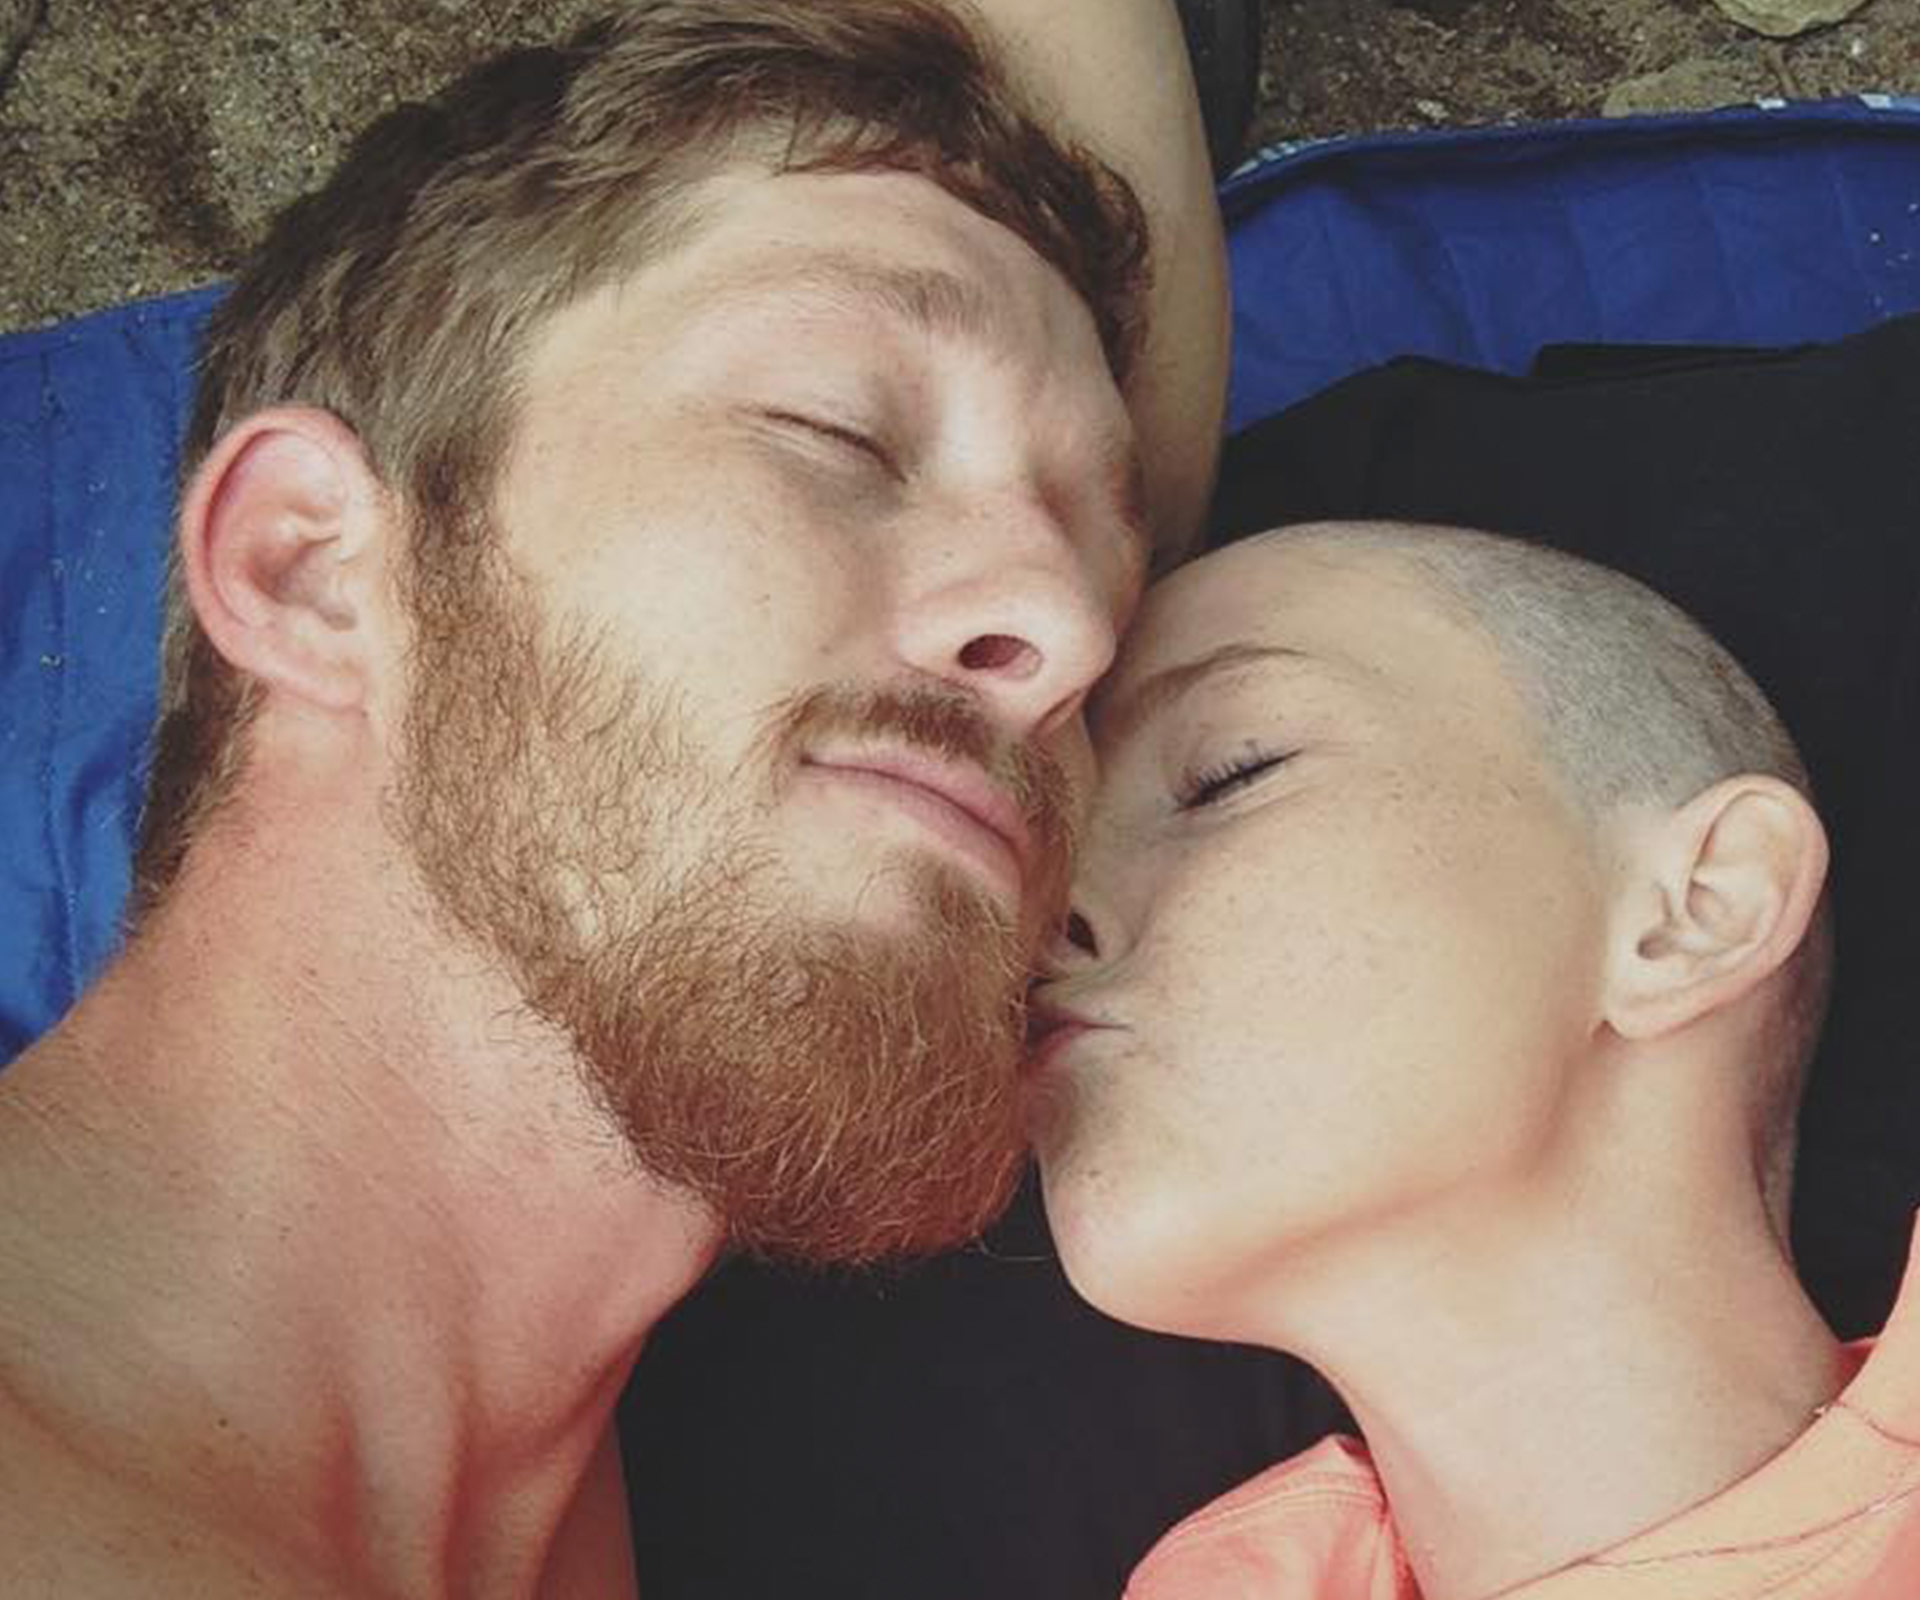 Girlfriend With Terminal Cancer Marries Longtime Boyfriend -V7